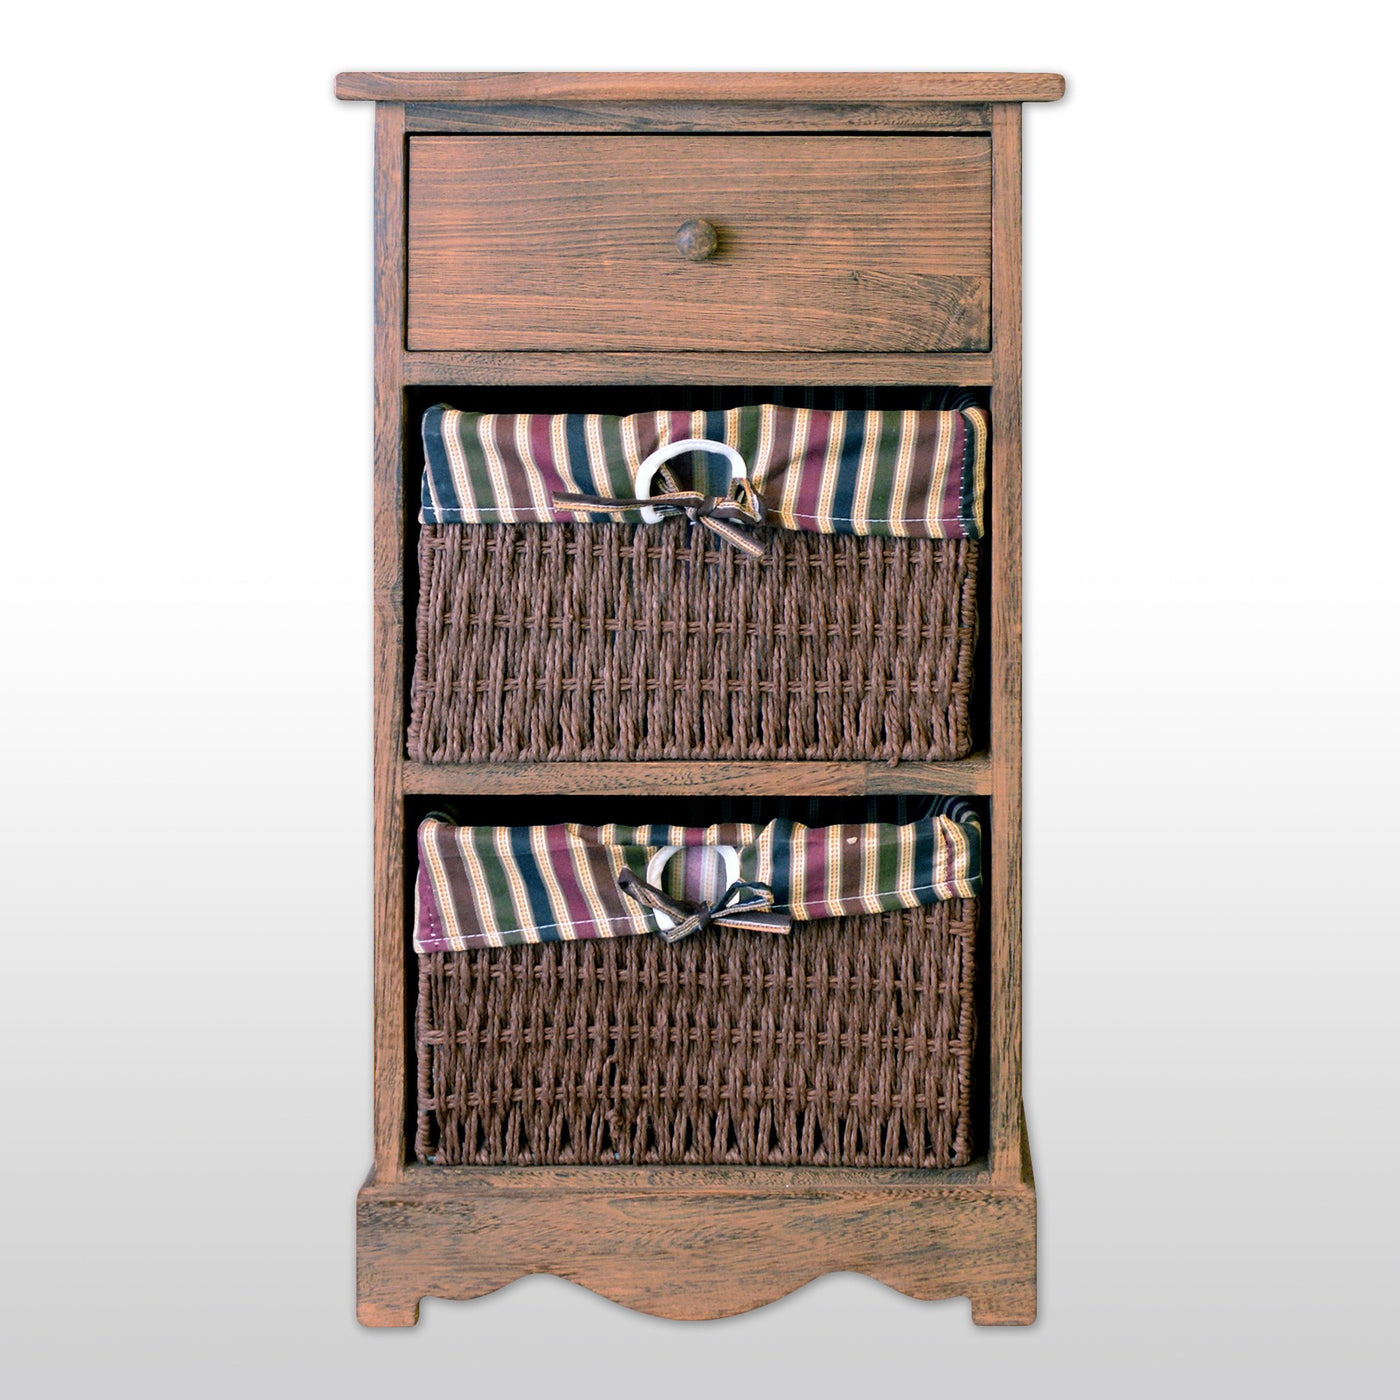 3 Tier Storage Unit With 1 Drawer 2 Wicker Baskets 27 Tall In